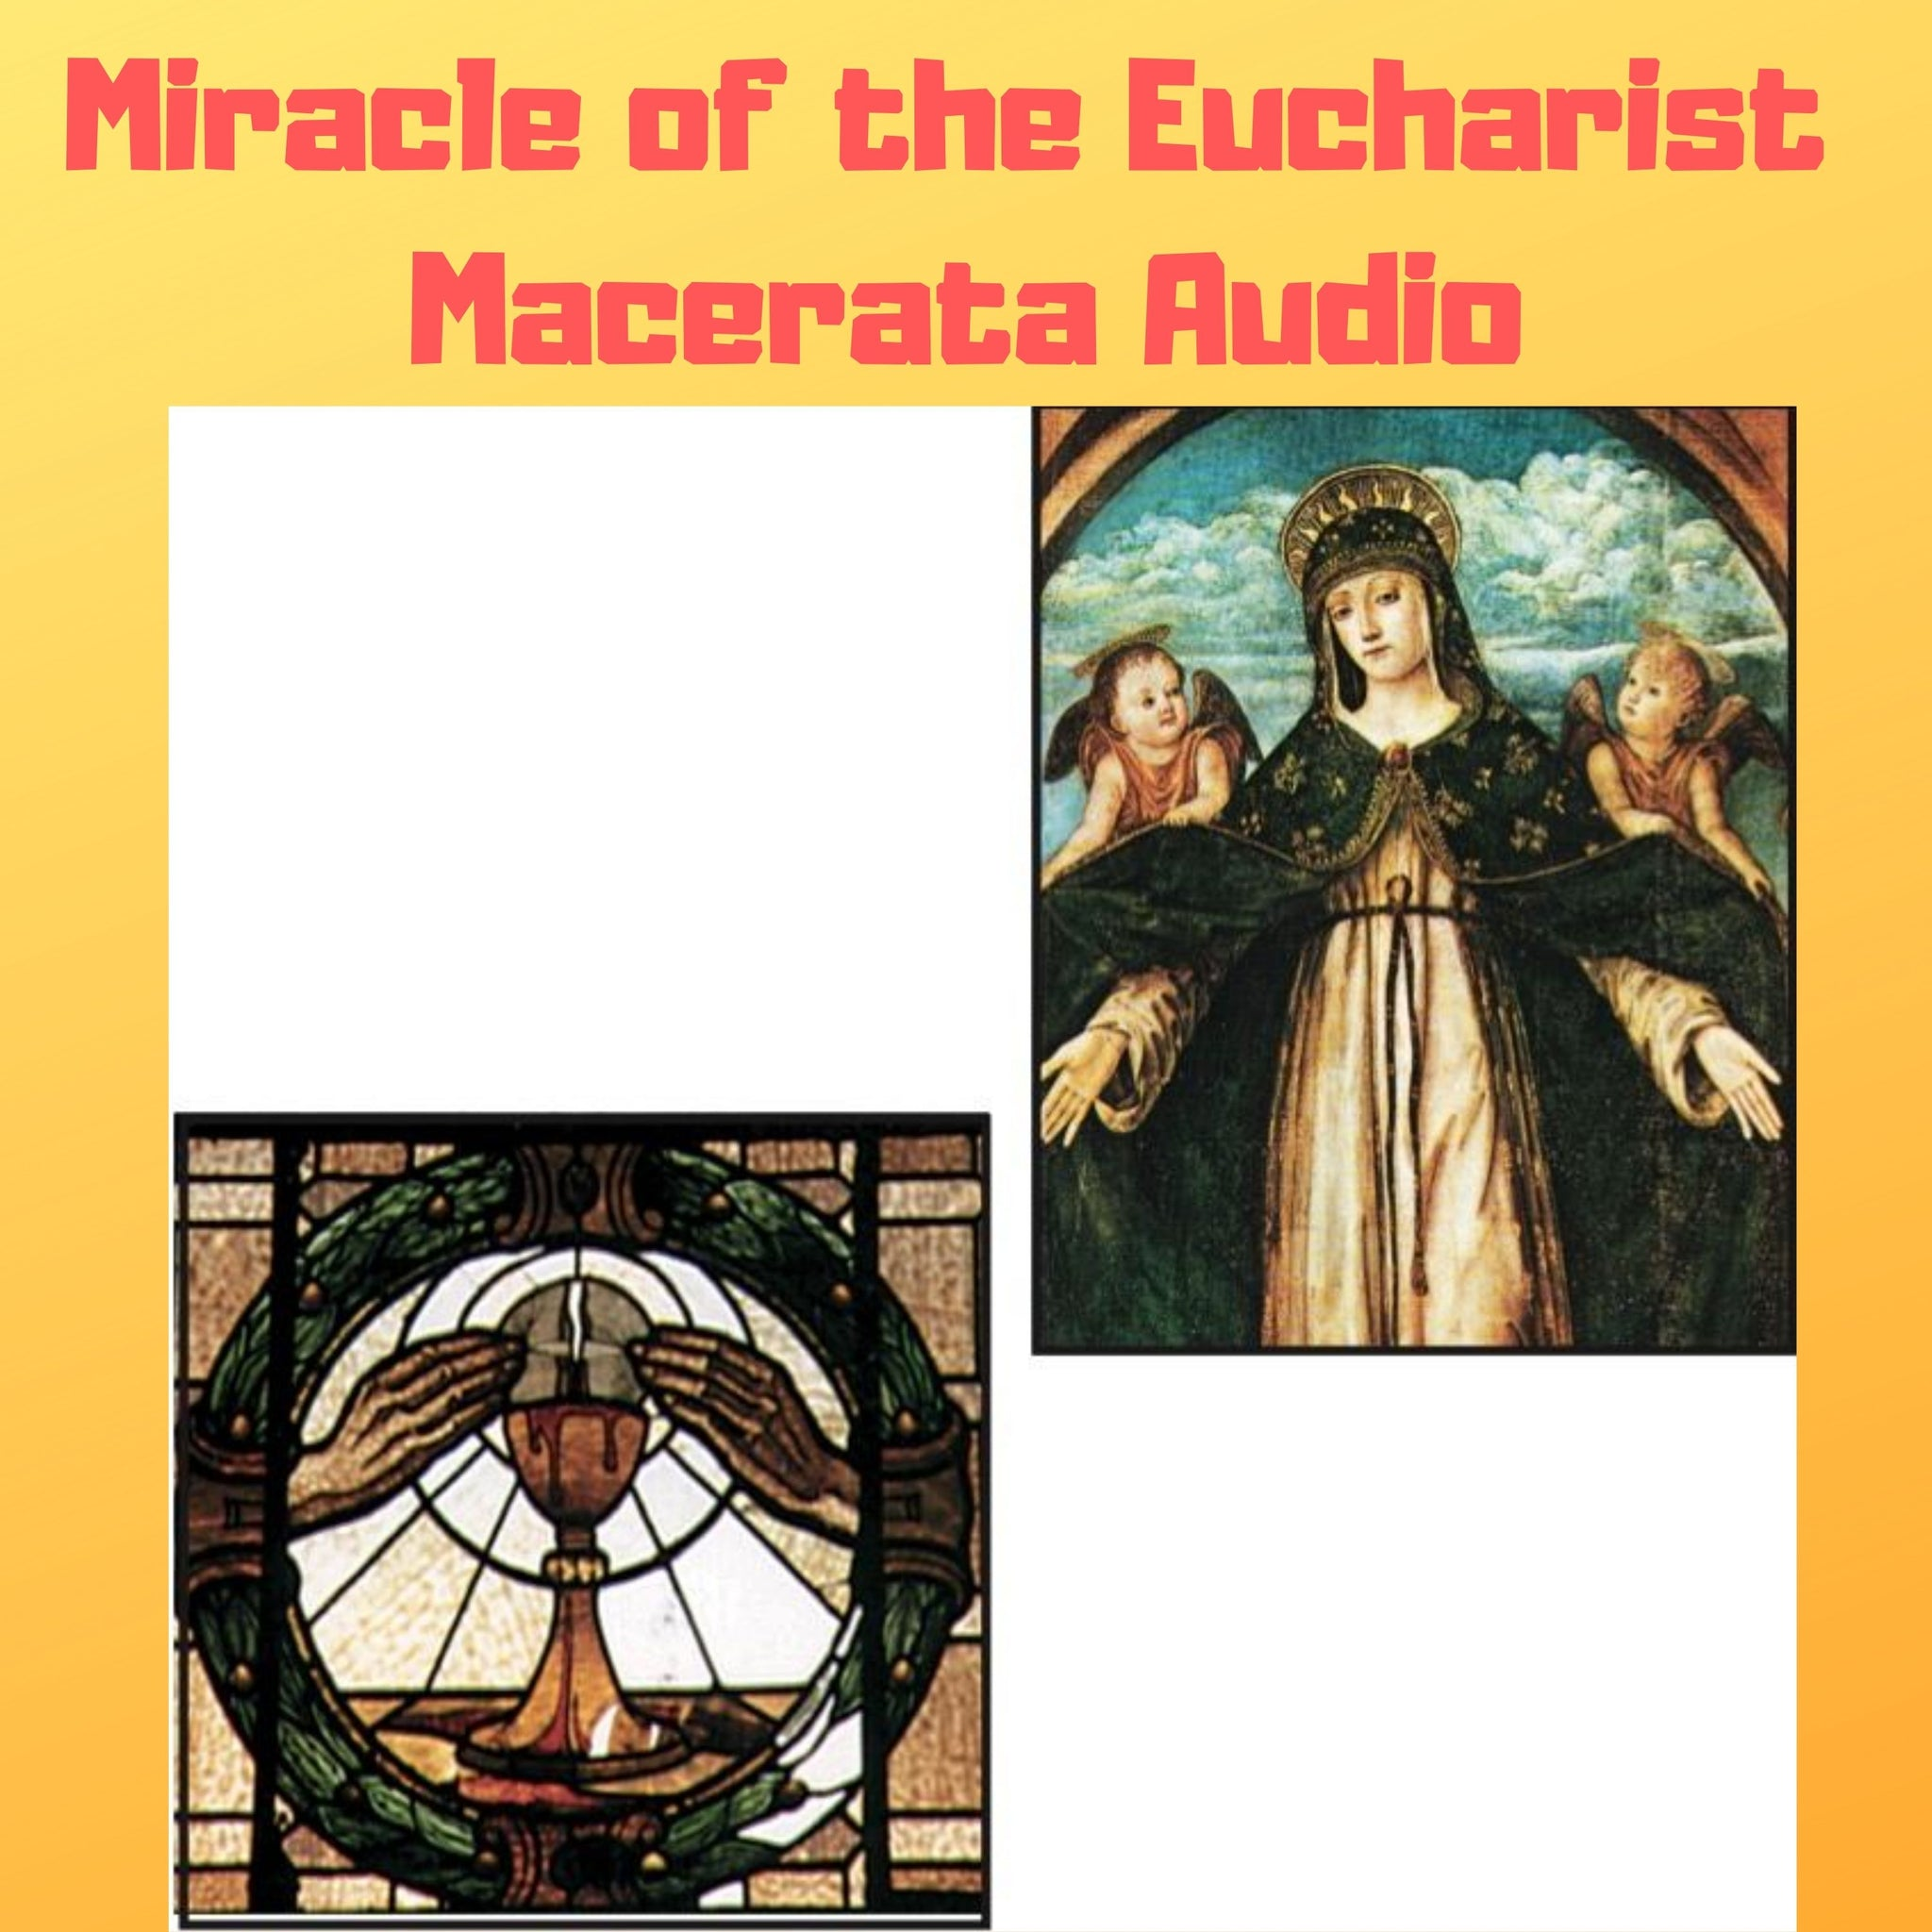 Miracle of the Eucharist of Erding, Germany - 1417 Audiobook Audiobook Bob and Penny Lord Ministry